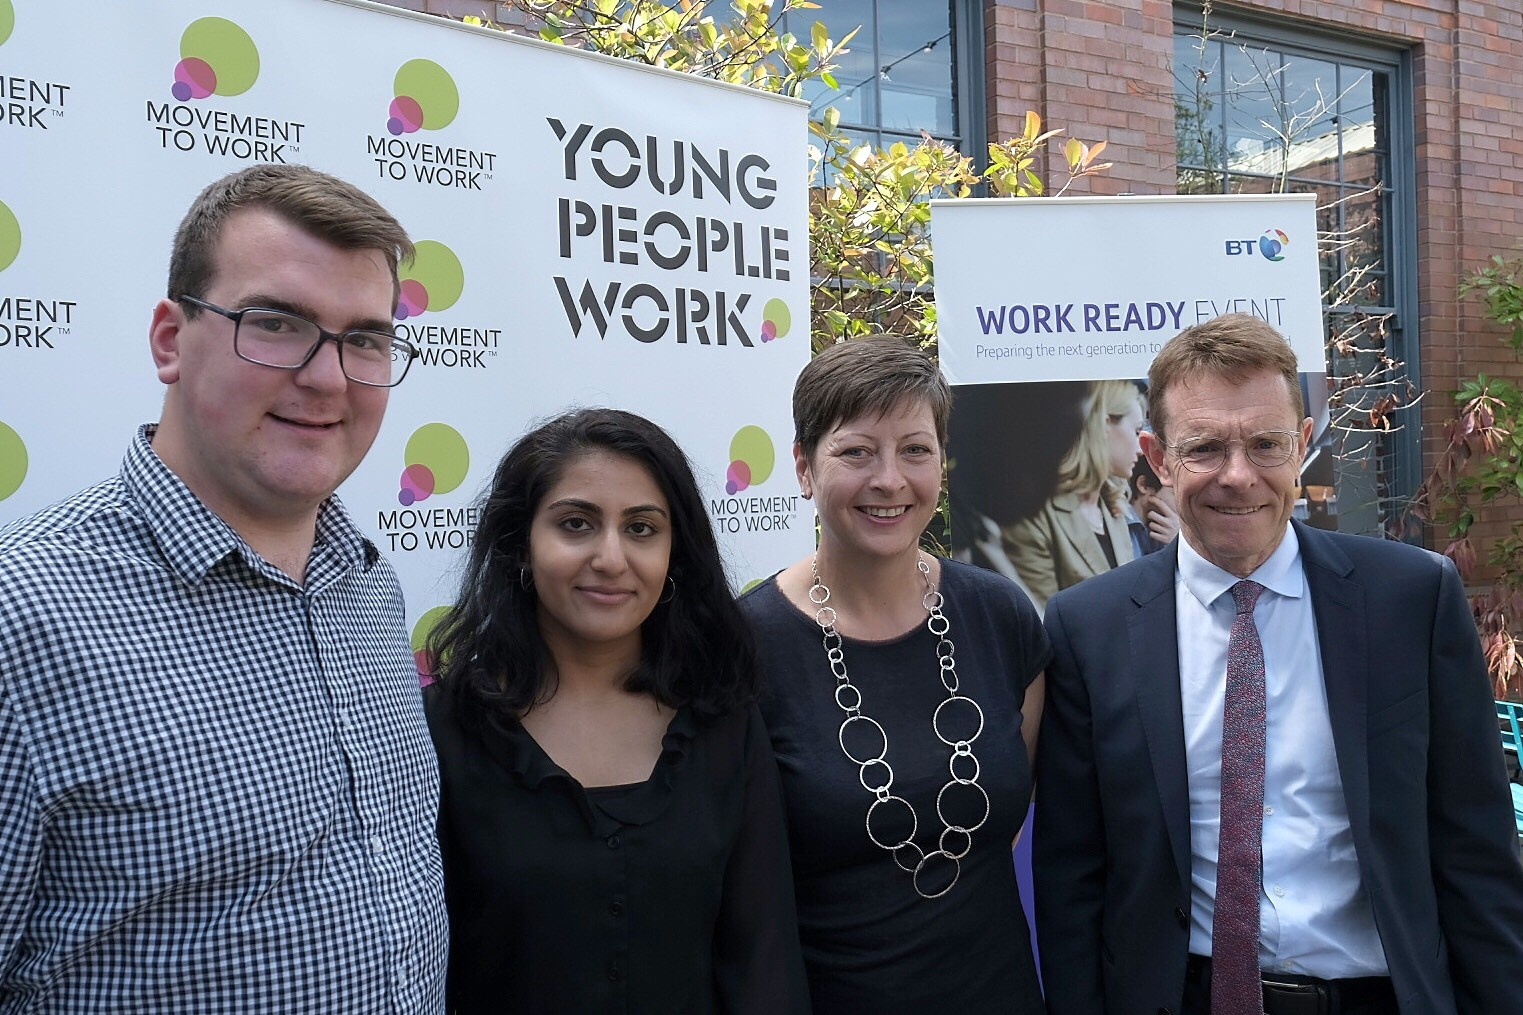 Young people among first of 1,000 in West Midlands to complete work placement programme